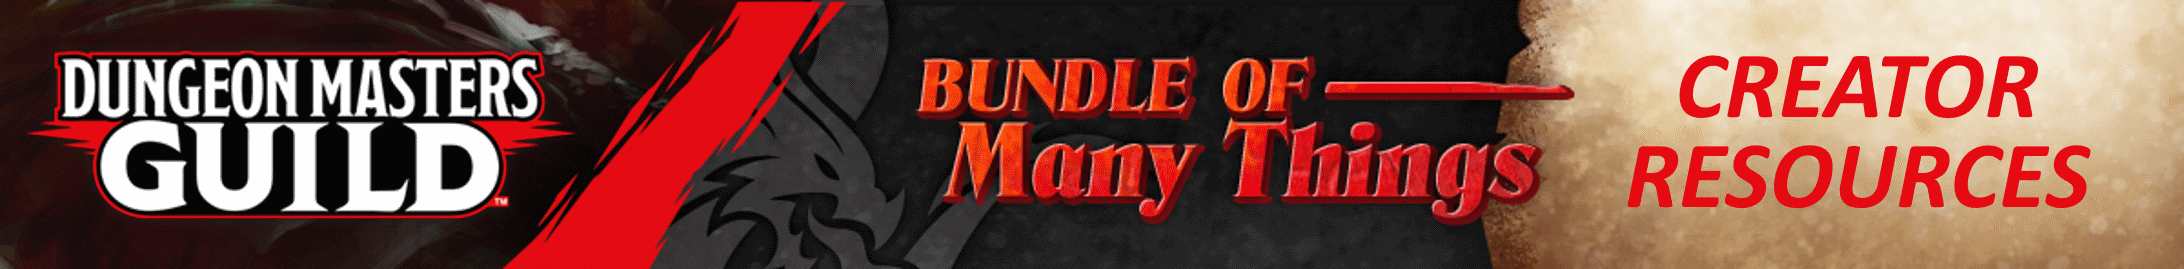 Bundle of Many Things: Creator Resources @ Dungeon Masters Guild